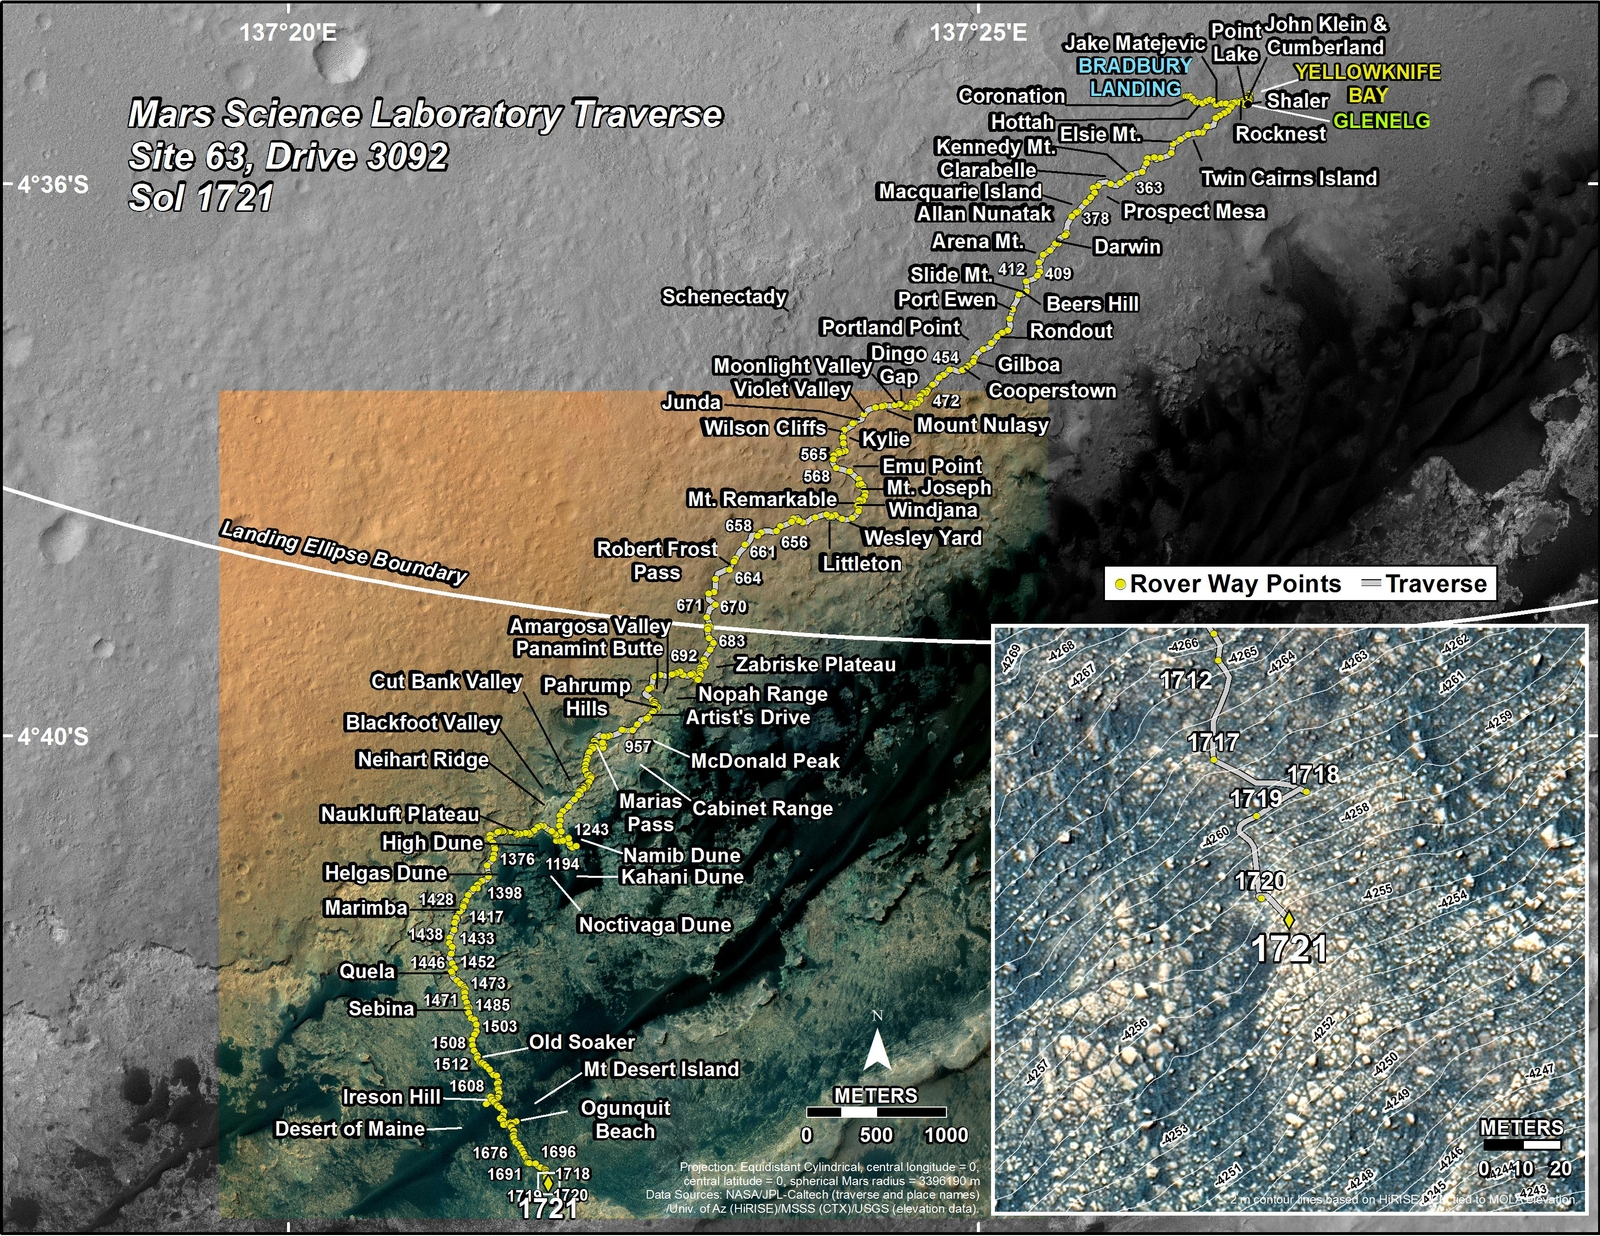 This map shows the route driven by NASA's Mars rover Curiosity through the 1721 Martian day, or sol, of the rover's mission on Mars (June 09, 2017).